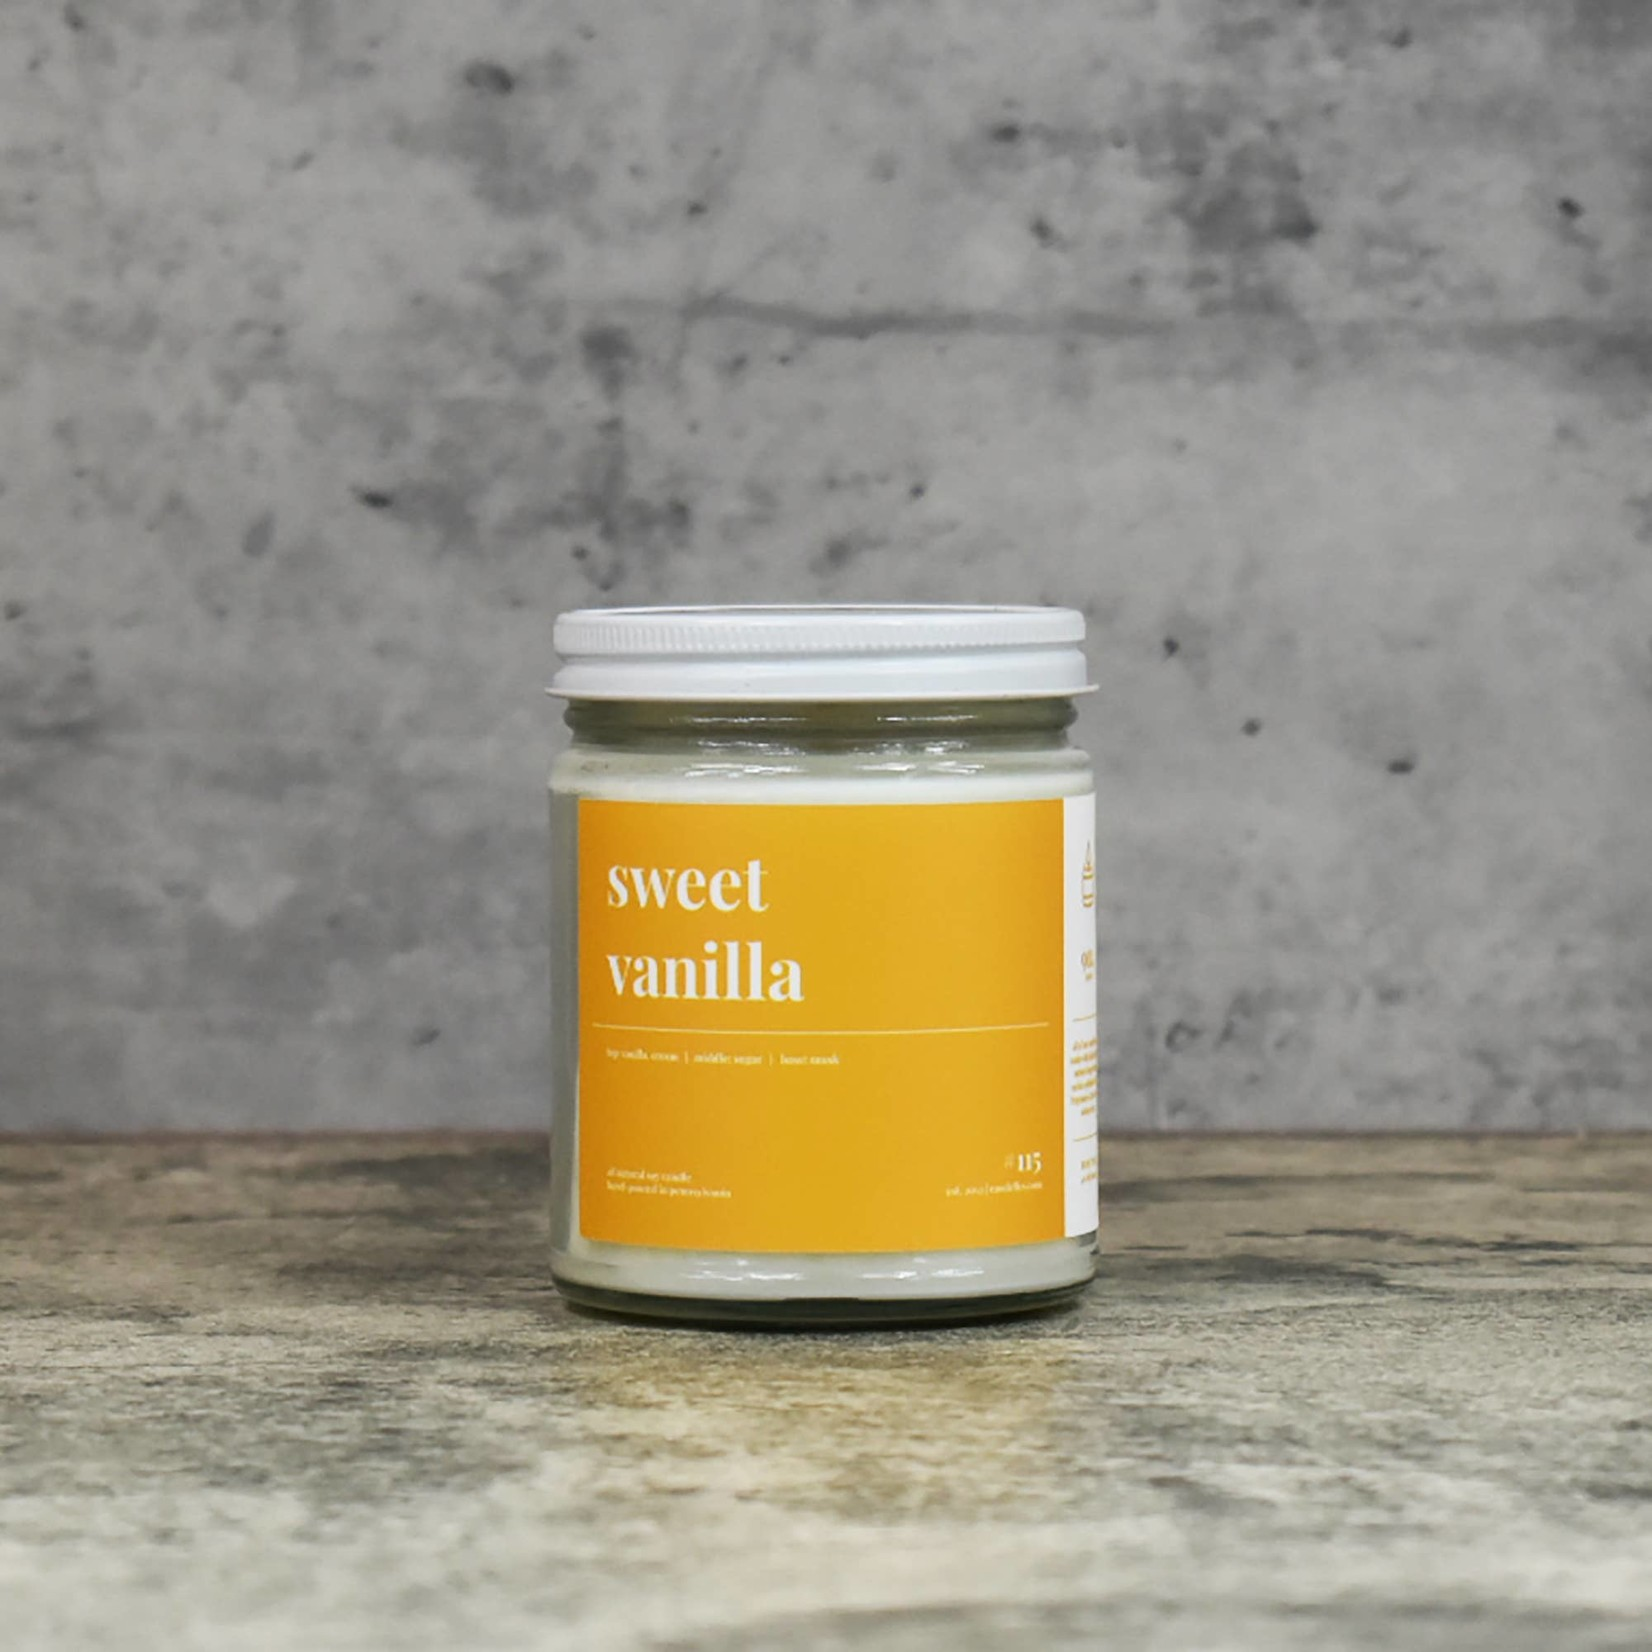 Candelles Soy Candles Sweet Vanilla 9 oz Soy Candle